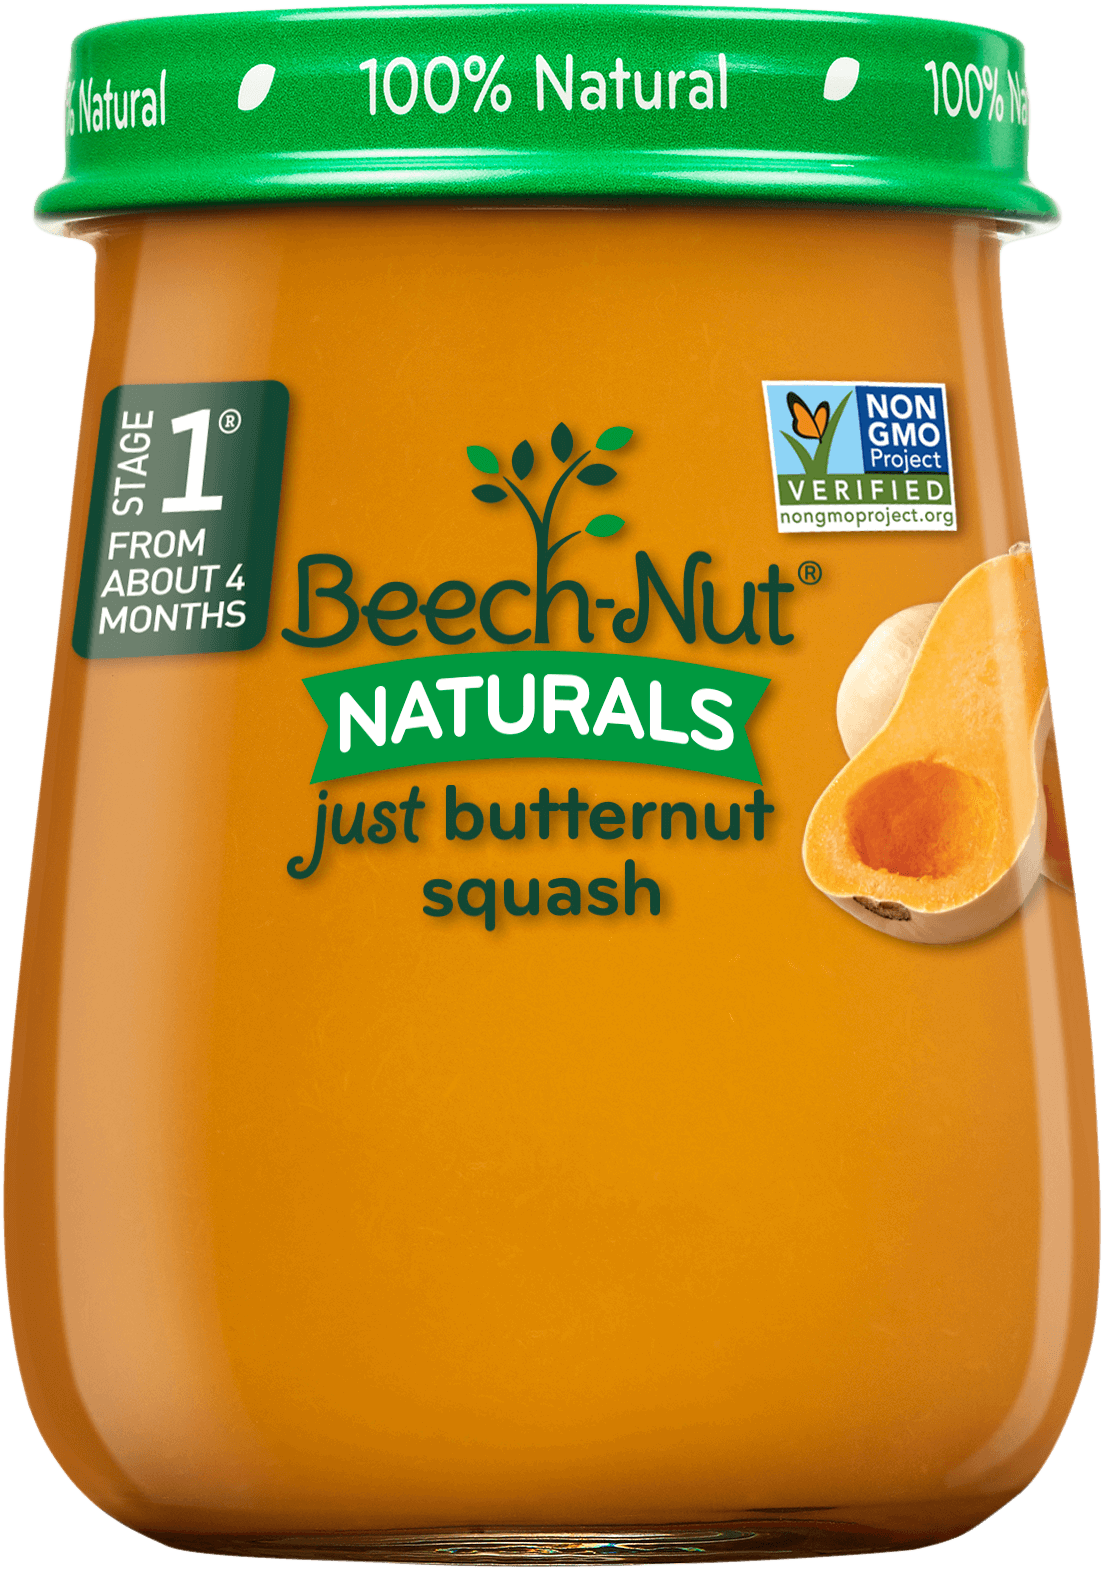 Beech-Nut naturals just butternut squash jar